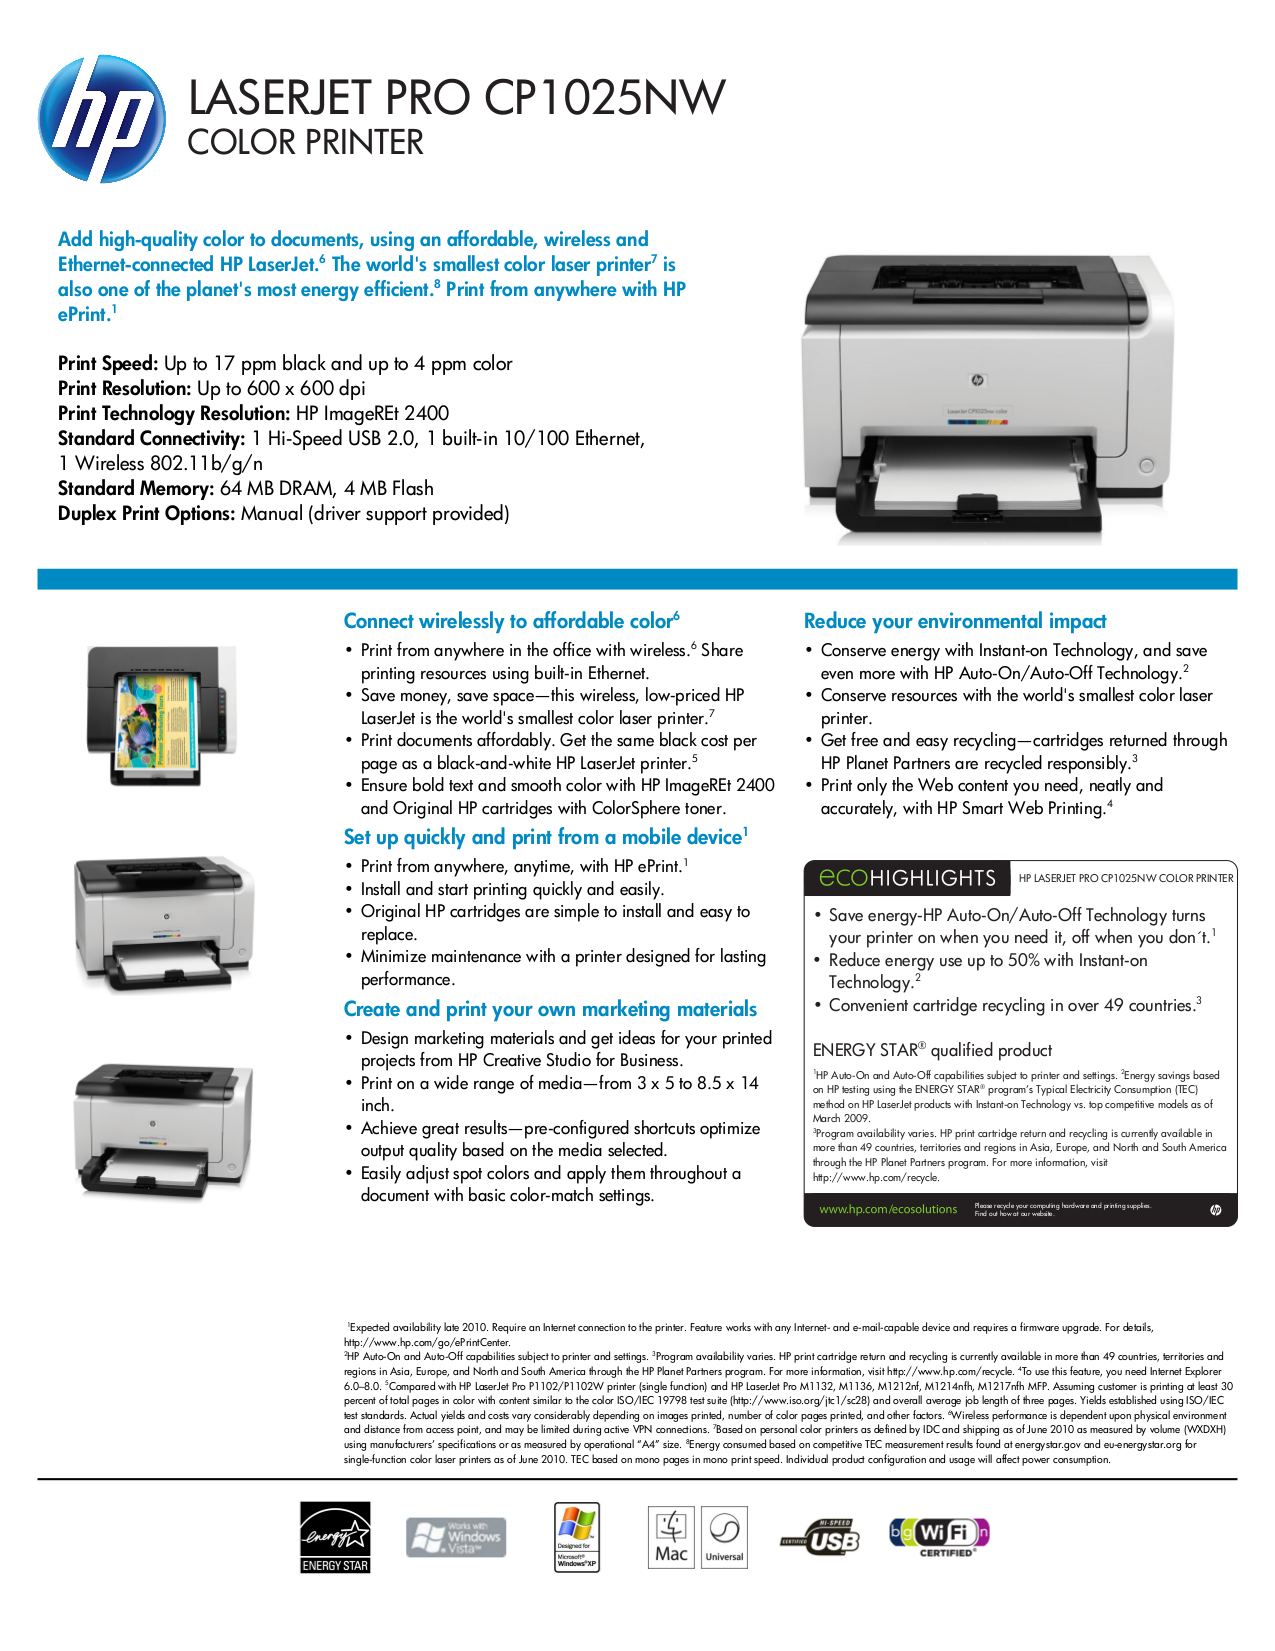 pdf for HP Printer Laserjet,Color Laserjet Pro CP1025nw manual